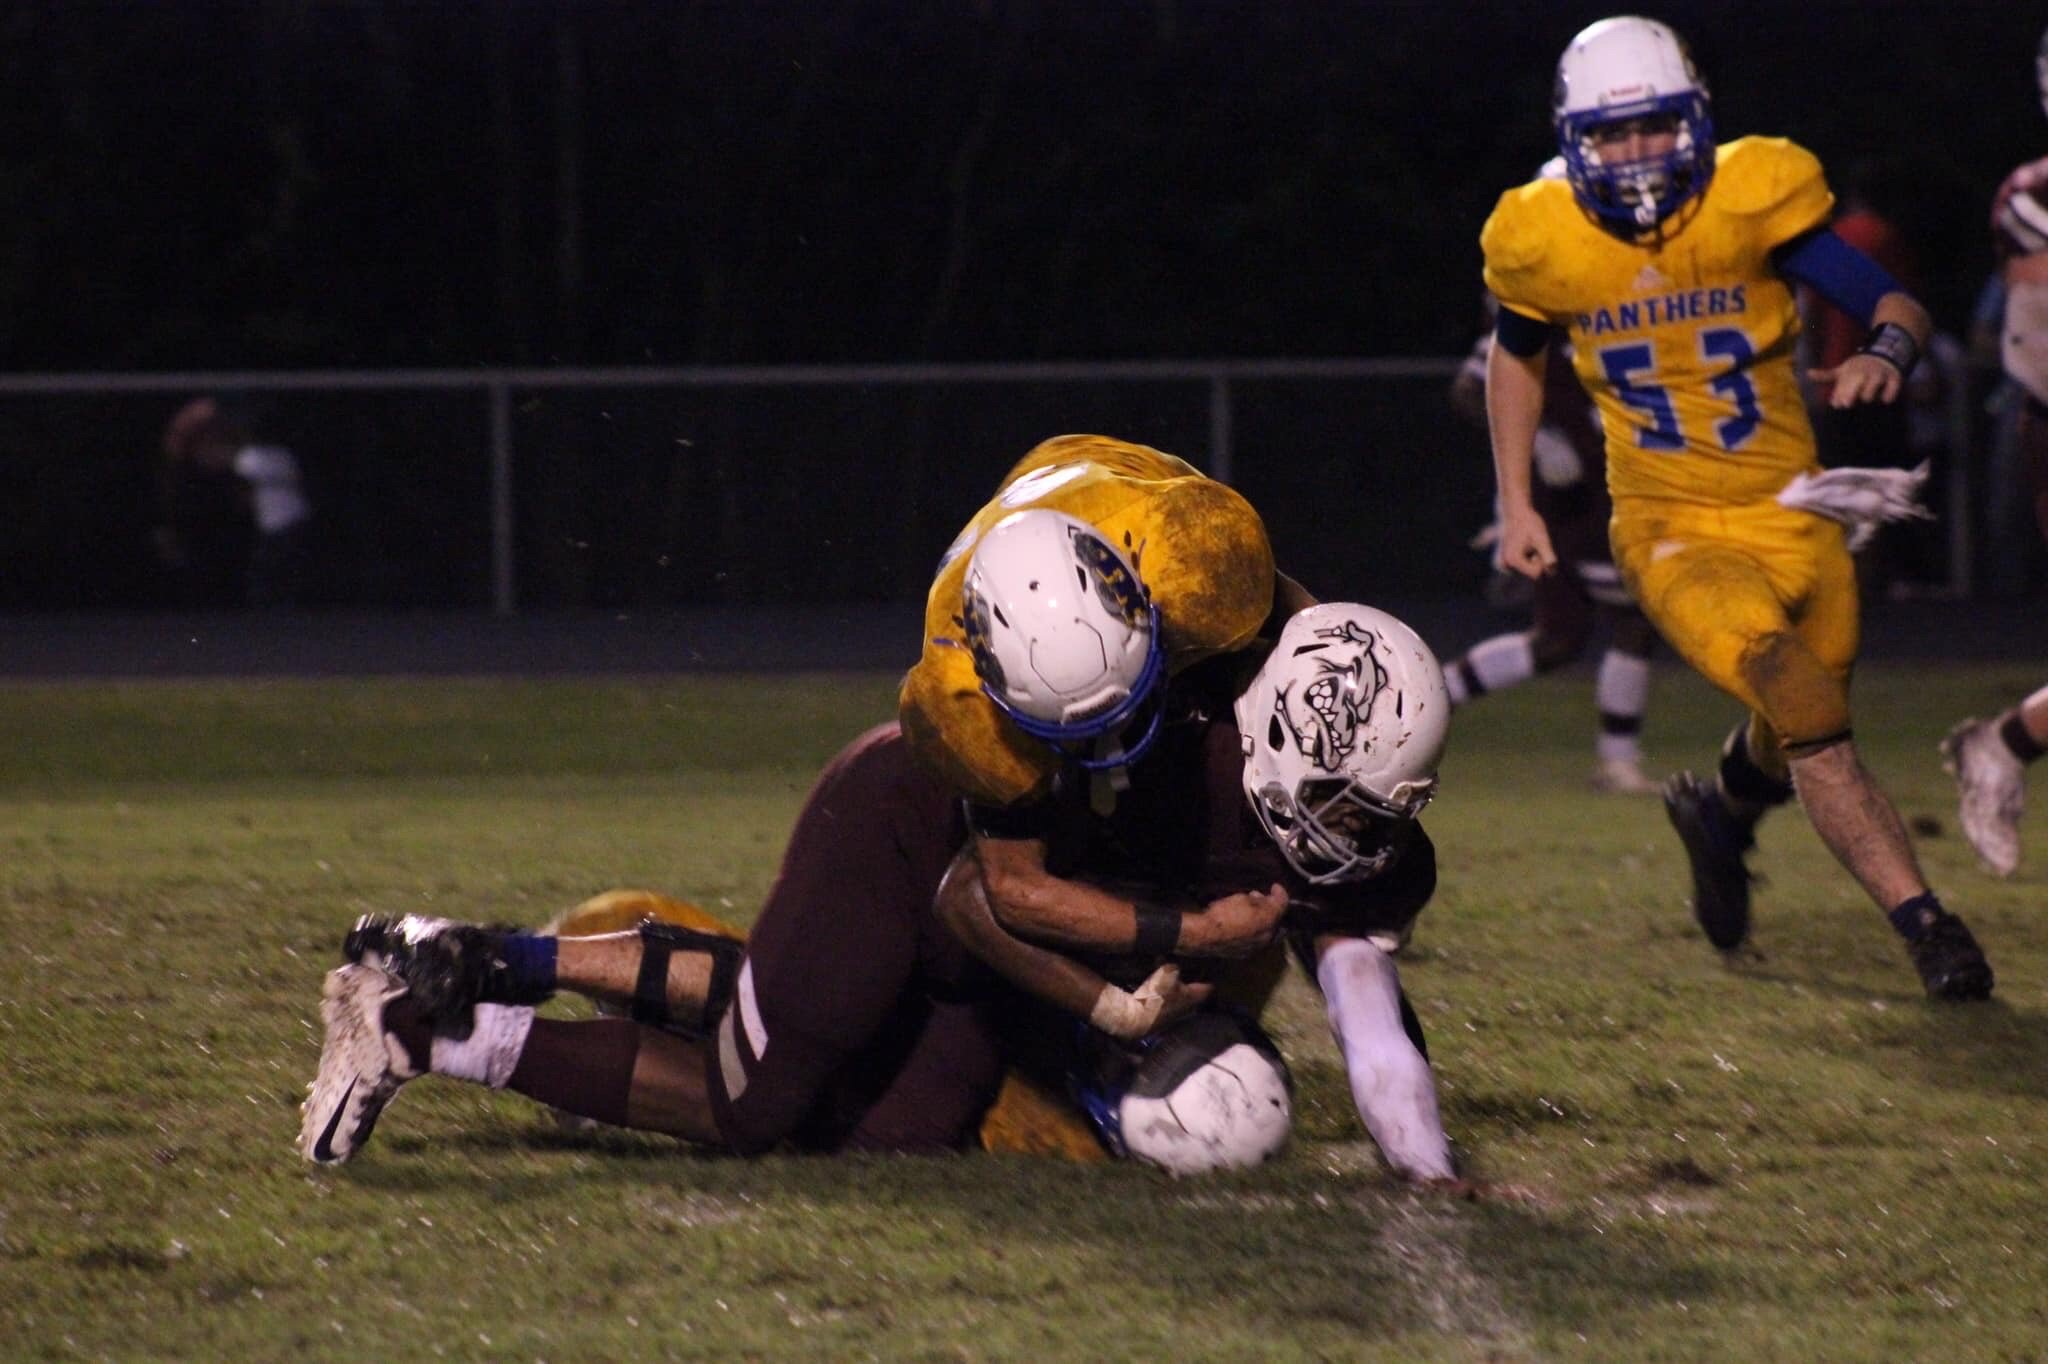 Photo by Lynn English: Mason Stephens with a tackle with Sam Creamer running to help.